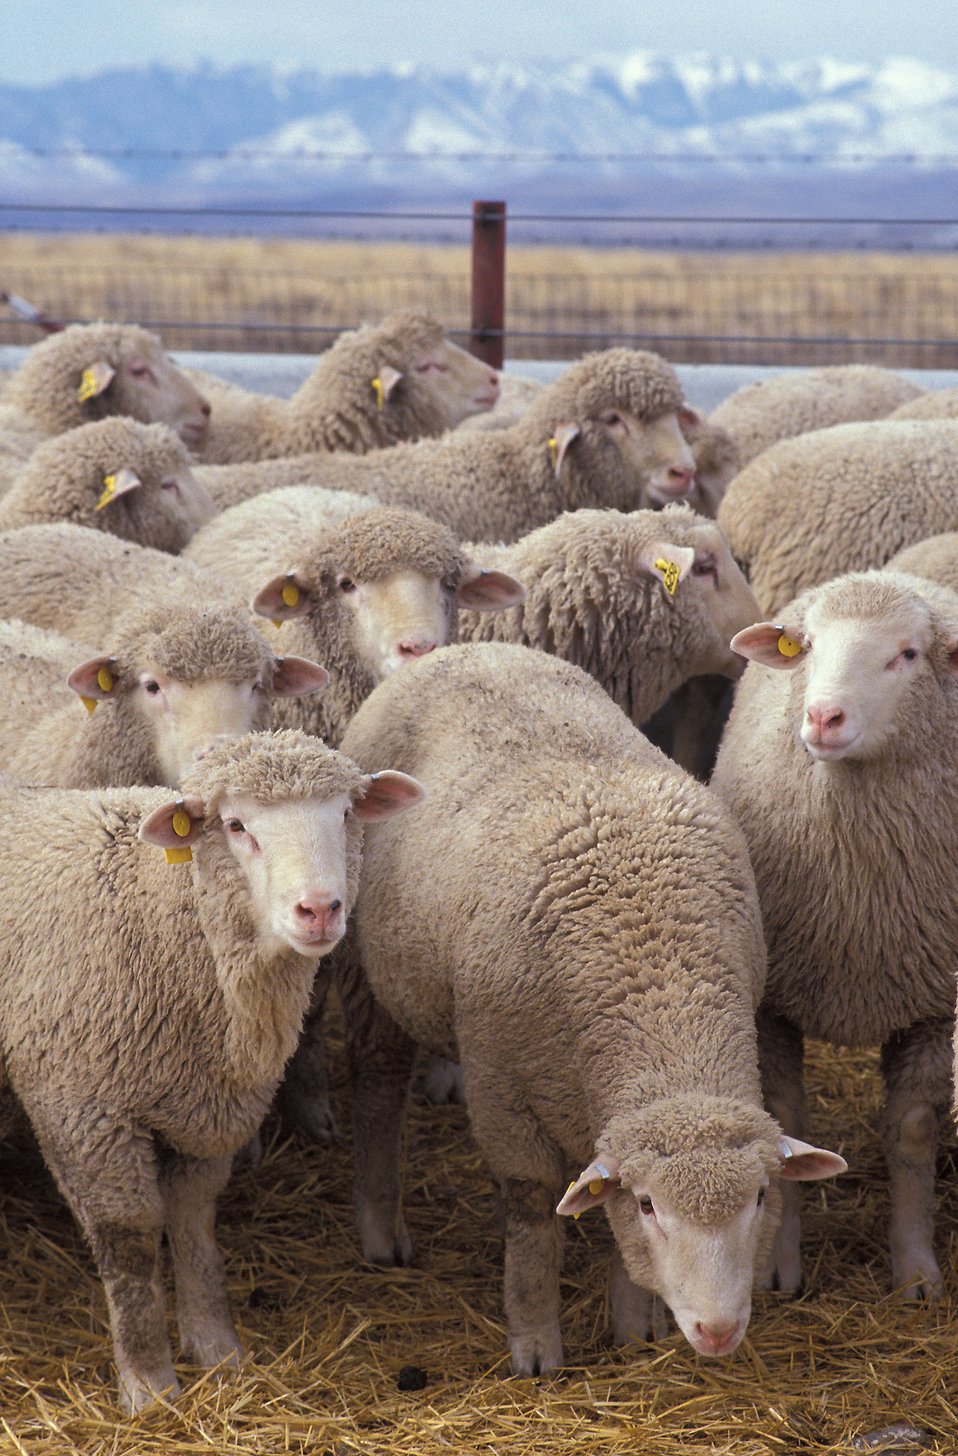 A flock of sheep : Free Stock Photo